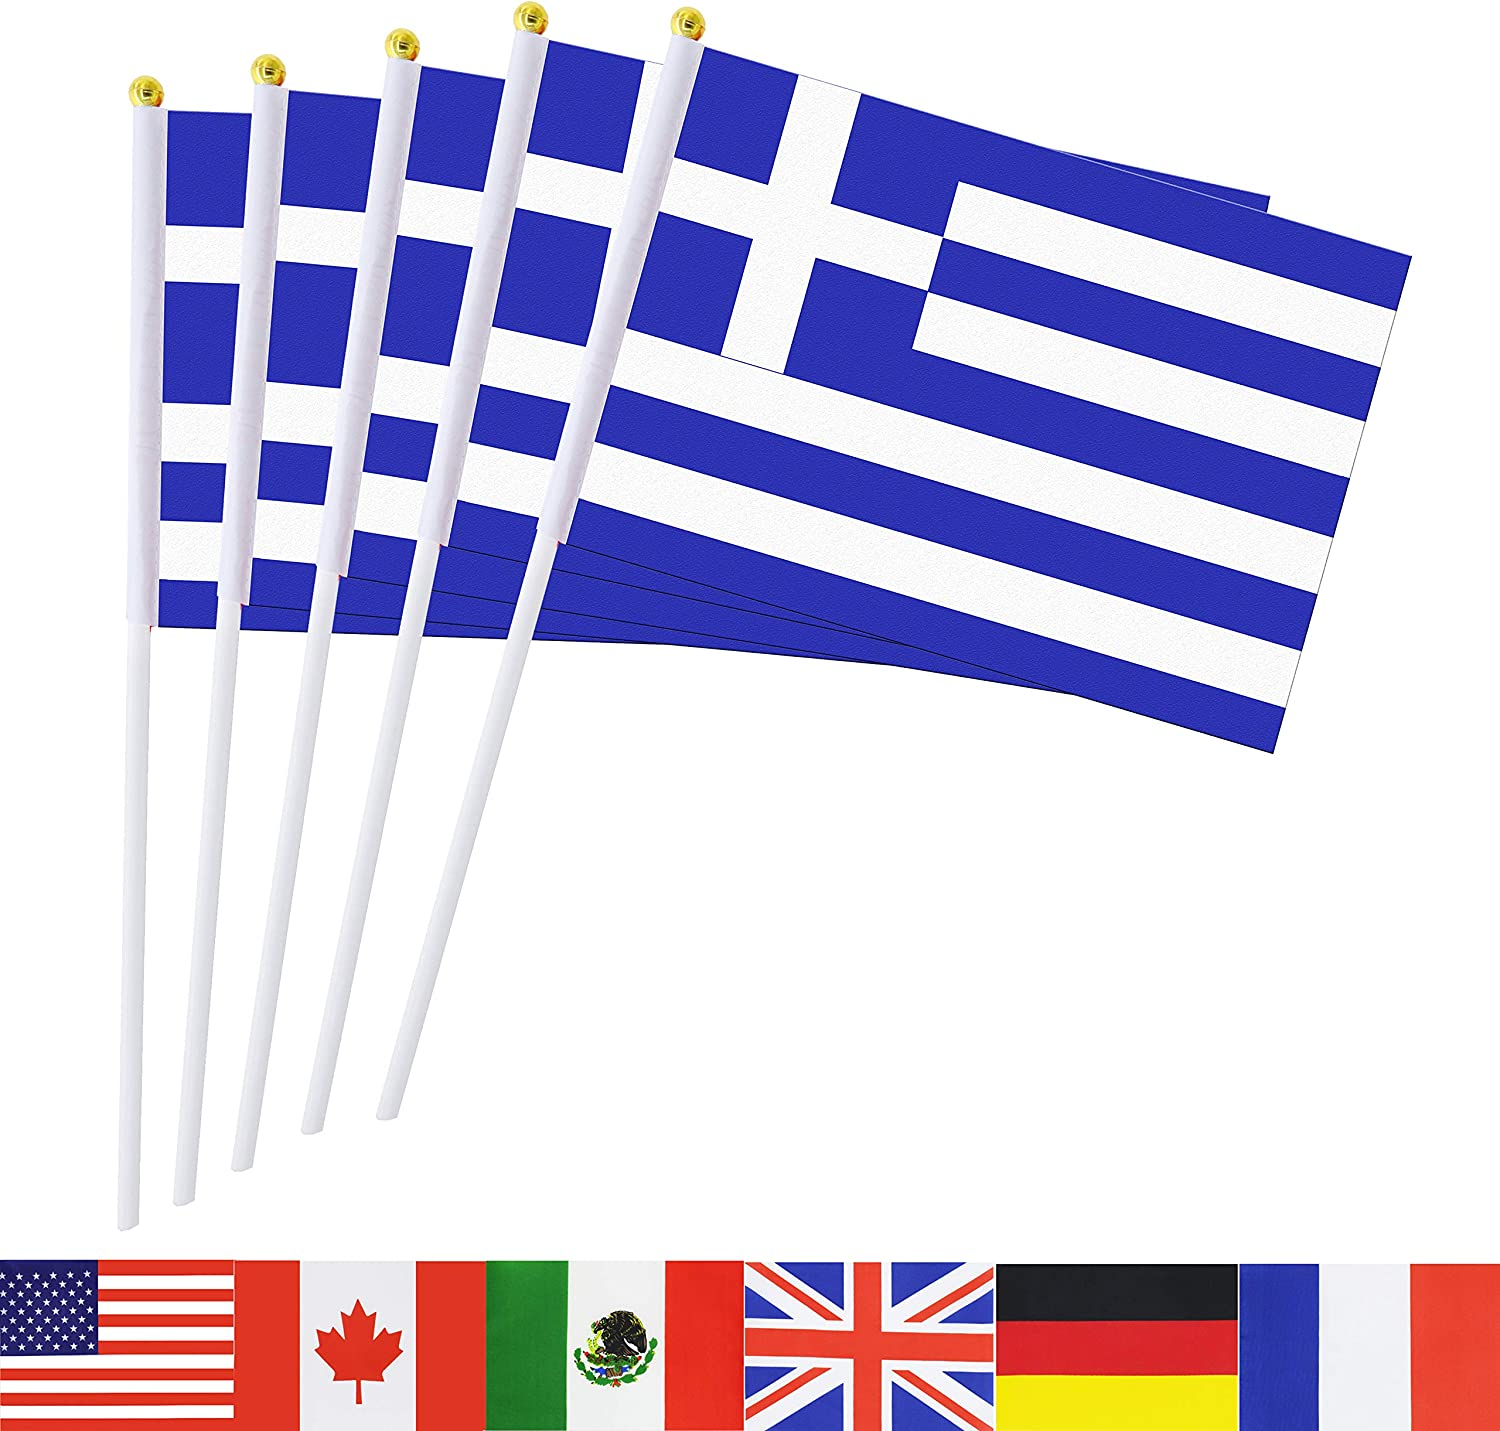 TSMD Greece Stick Flag, 50 Pack Hand Held Small Greek National Flags On Stick,International World Country Stick Flags Banners,Party Decorations for Olympics,Sports Clubs,Festival Events Celebration